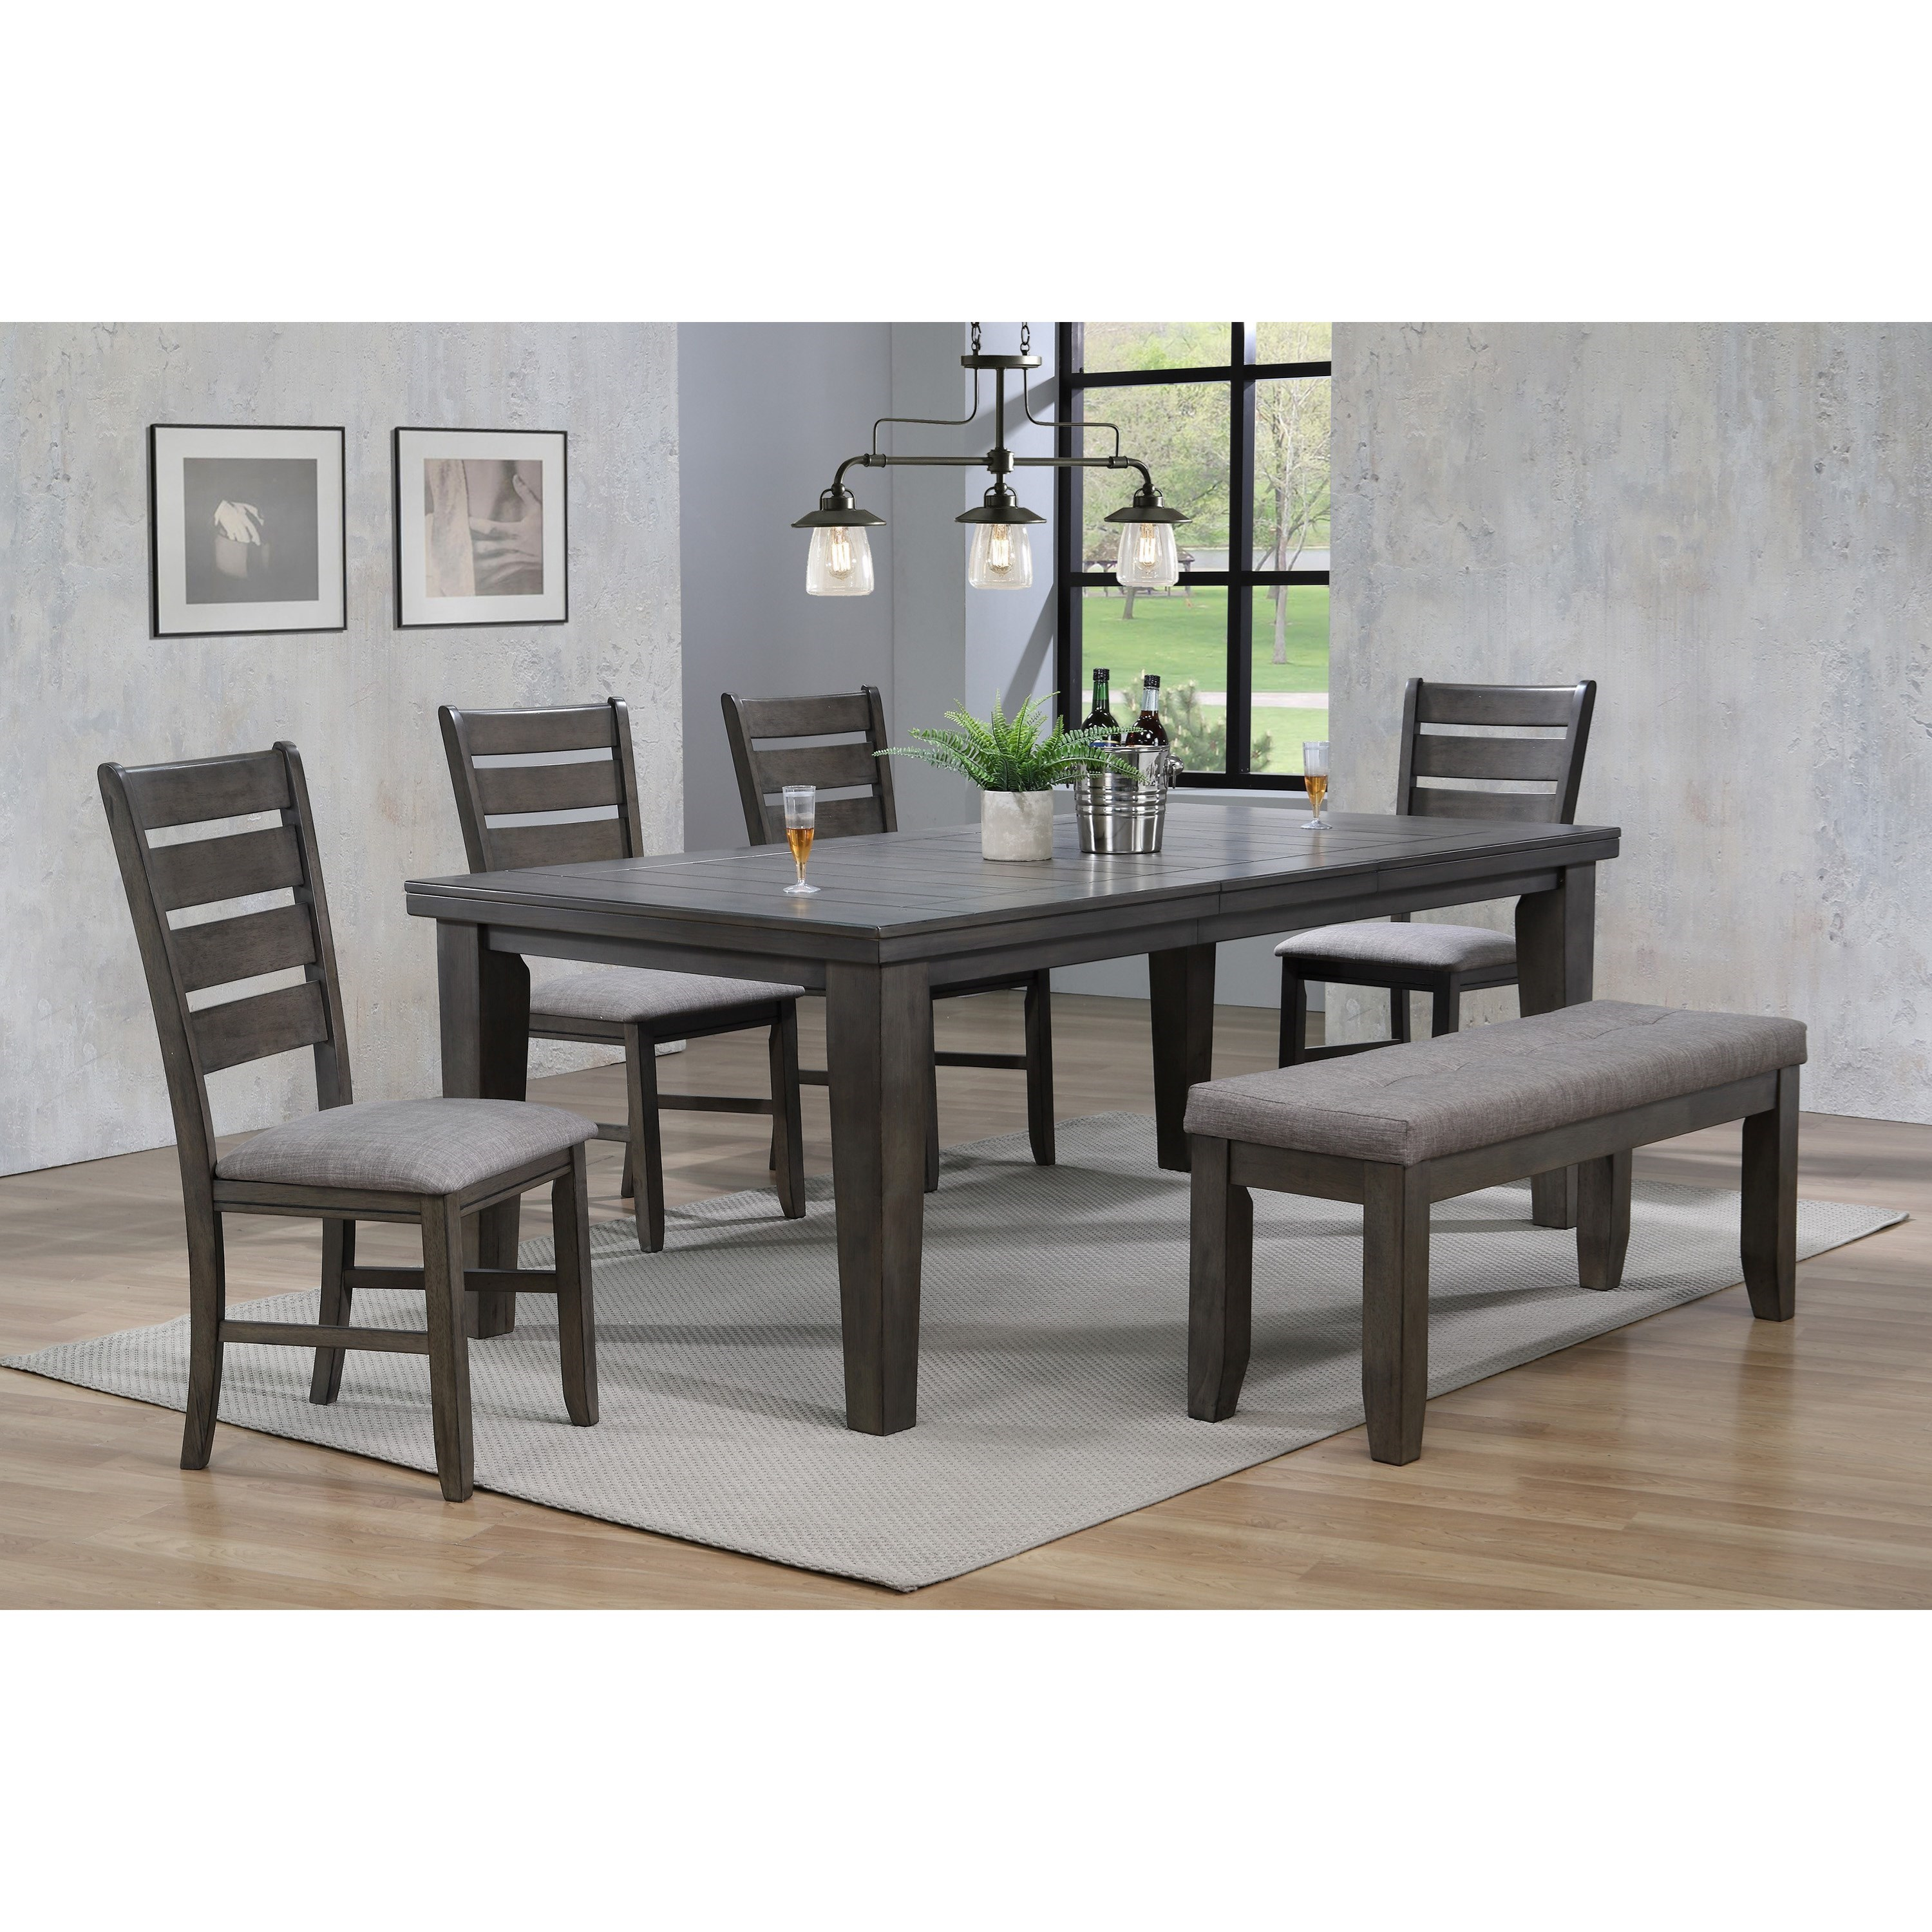 Bardstown 6 Piece Dining Set w/ 4 Chairs & Bench by Crown Mark at Northeast Factory Direct